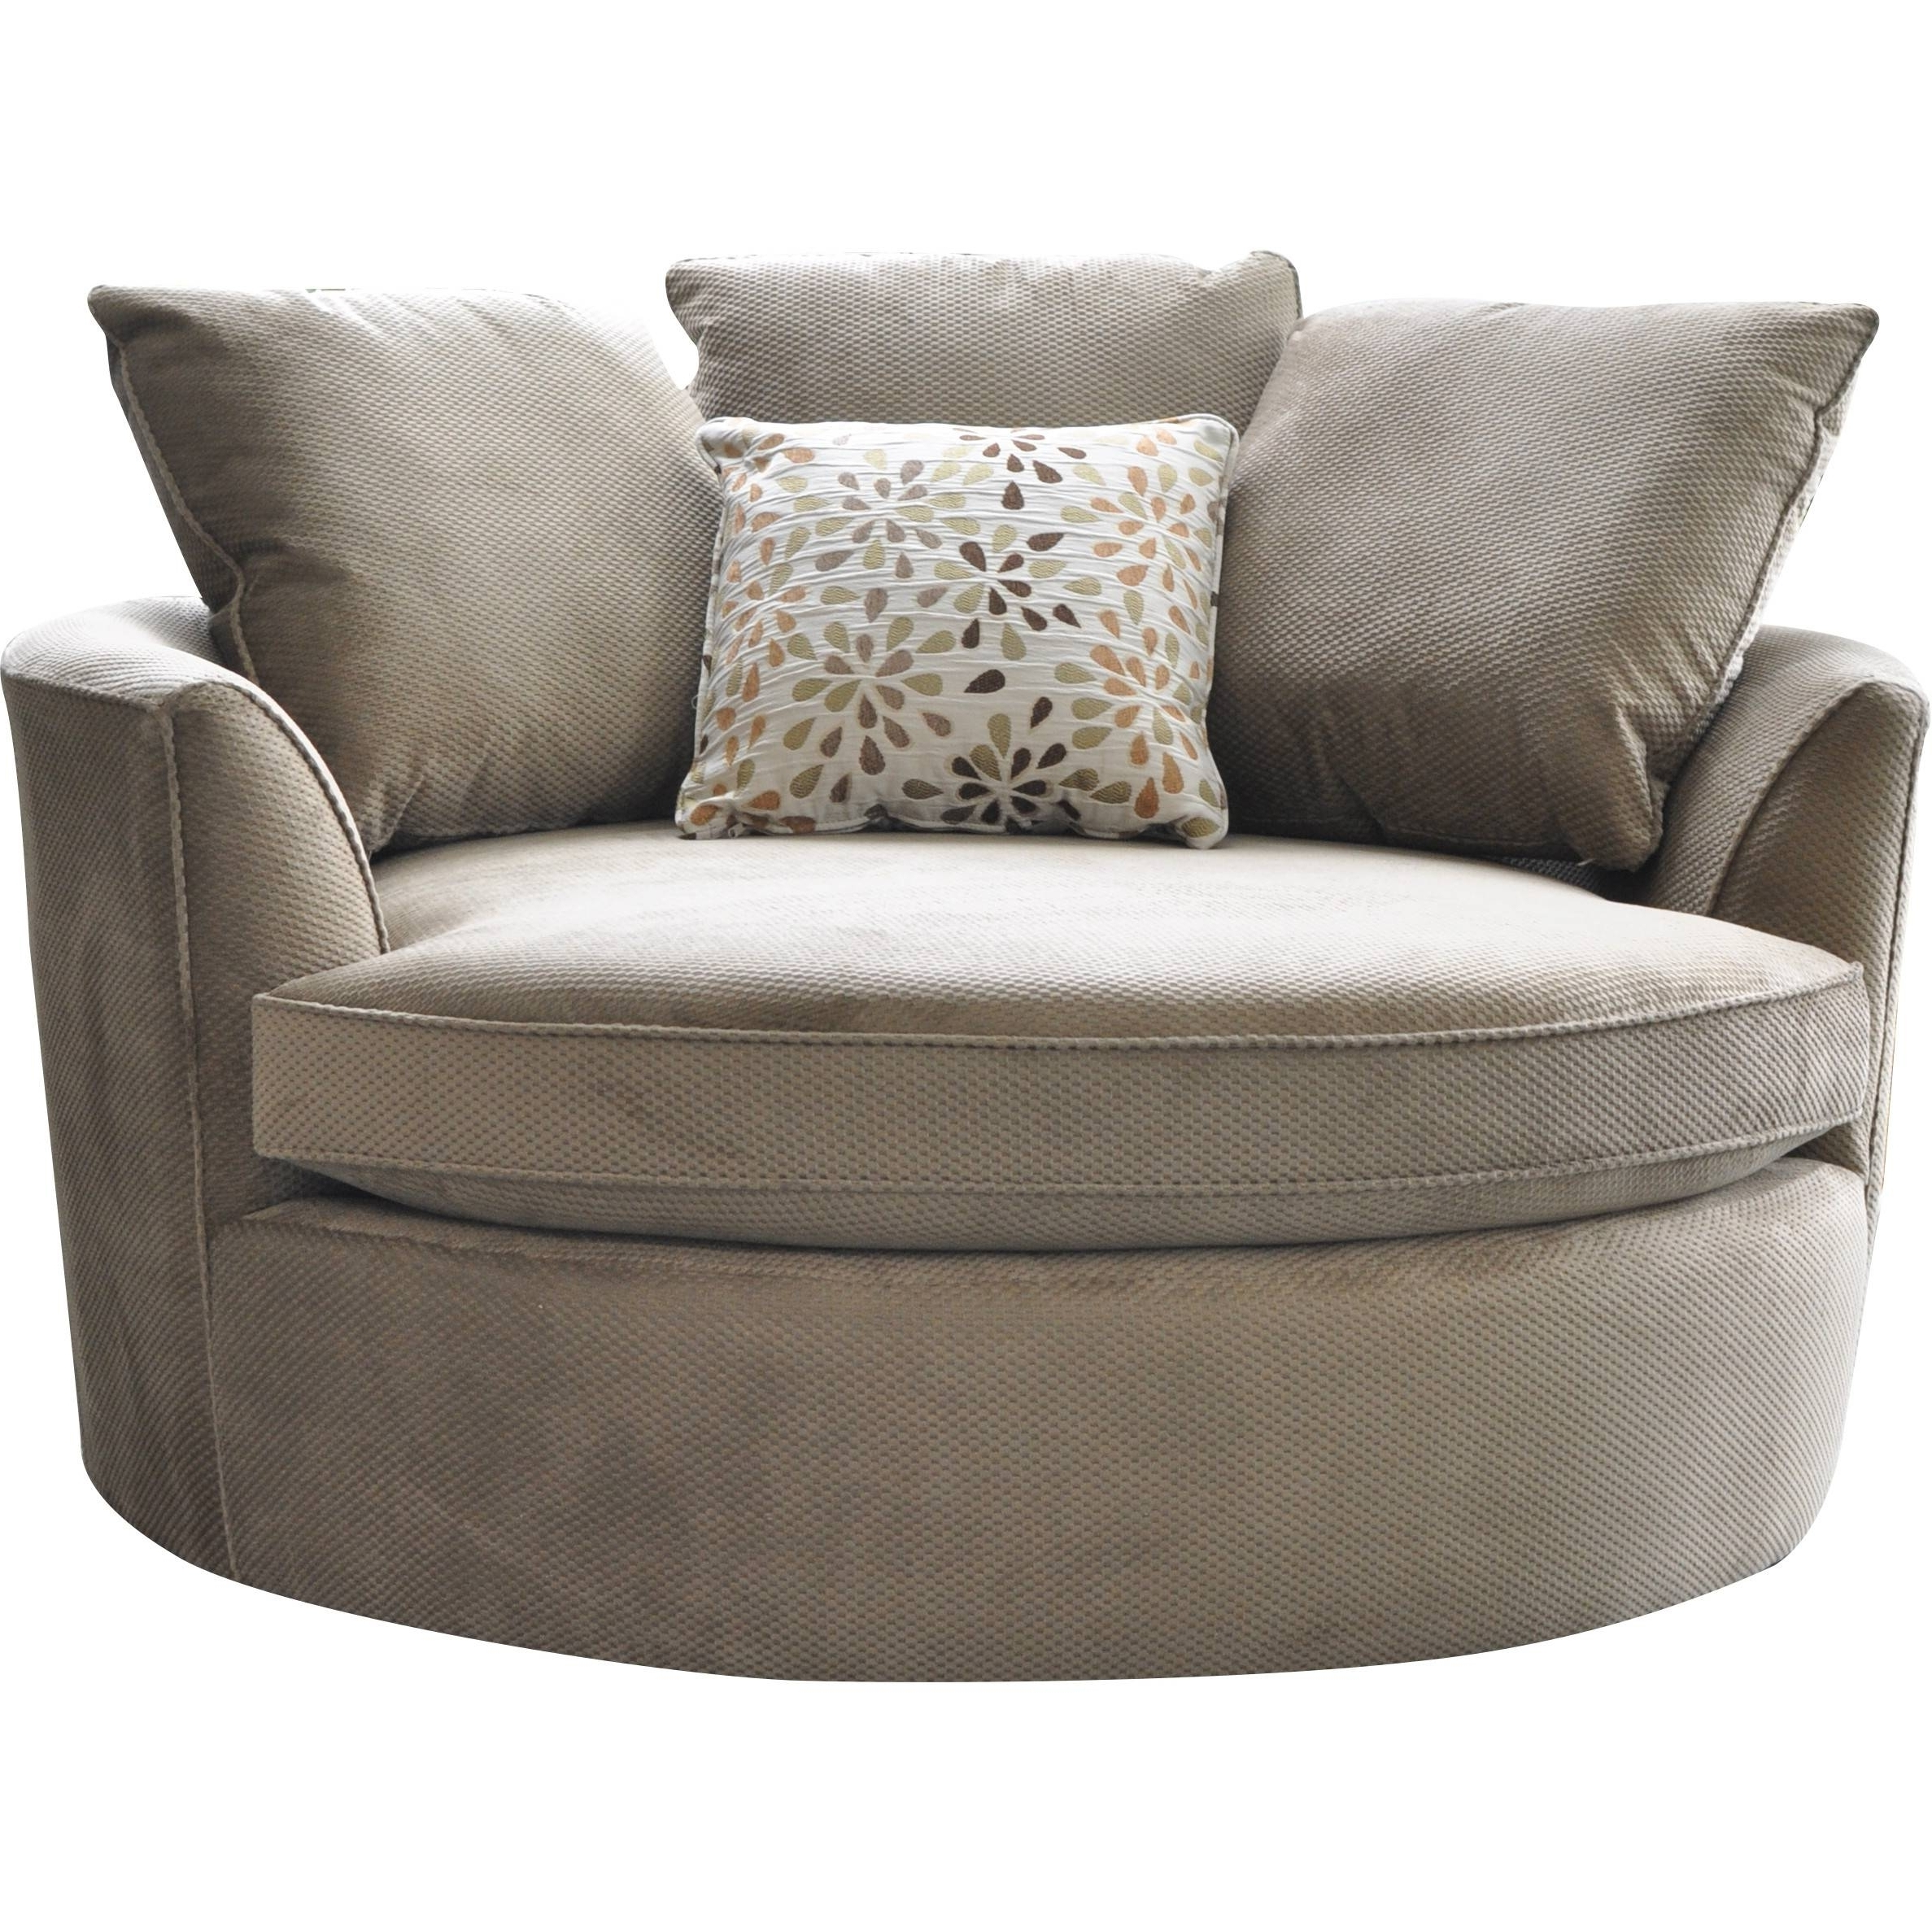 Most Recently Released Sofas : Violino Sofa Snuggle Seat Cuddler Furniture Sleeper Sofa Within Snuggle Sofas (View 9 of 20)